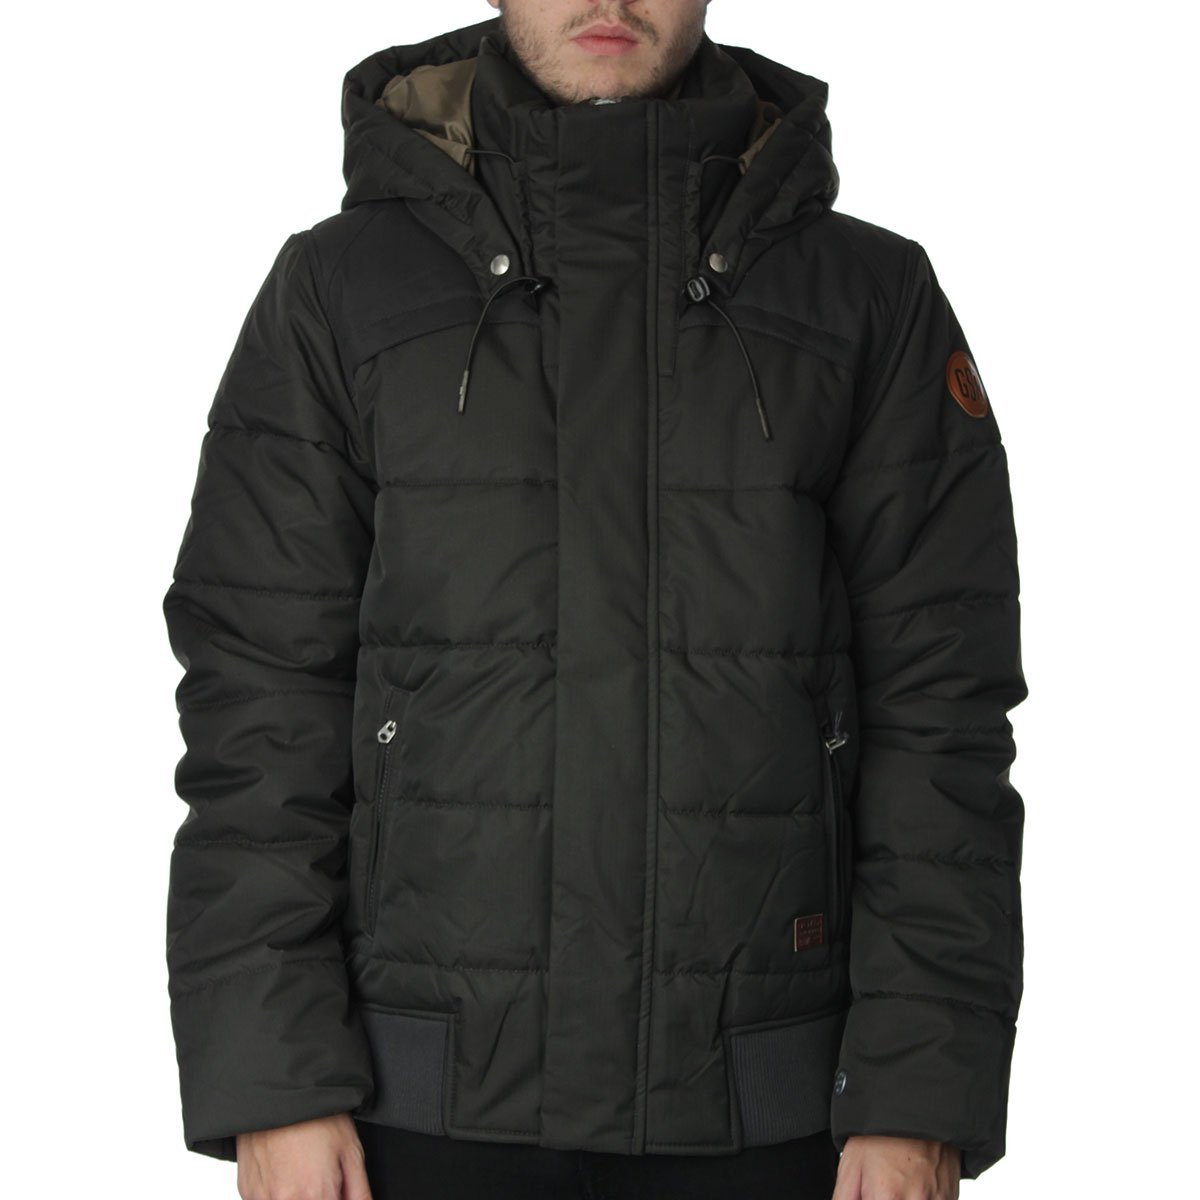 g star whistle hooded bomber jacket g star from the menswear site uk. Black Bedroom Furniture Sets. Home Design Ideas